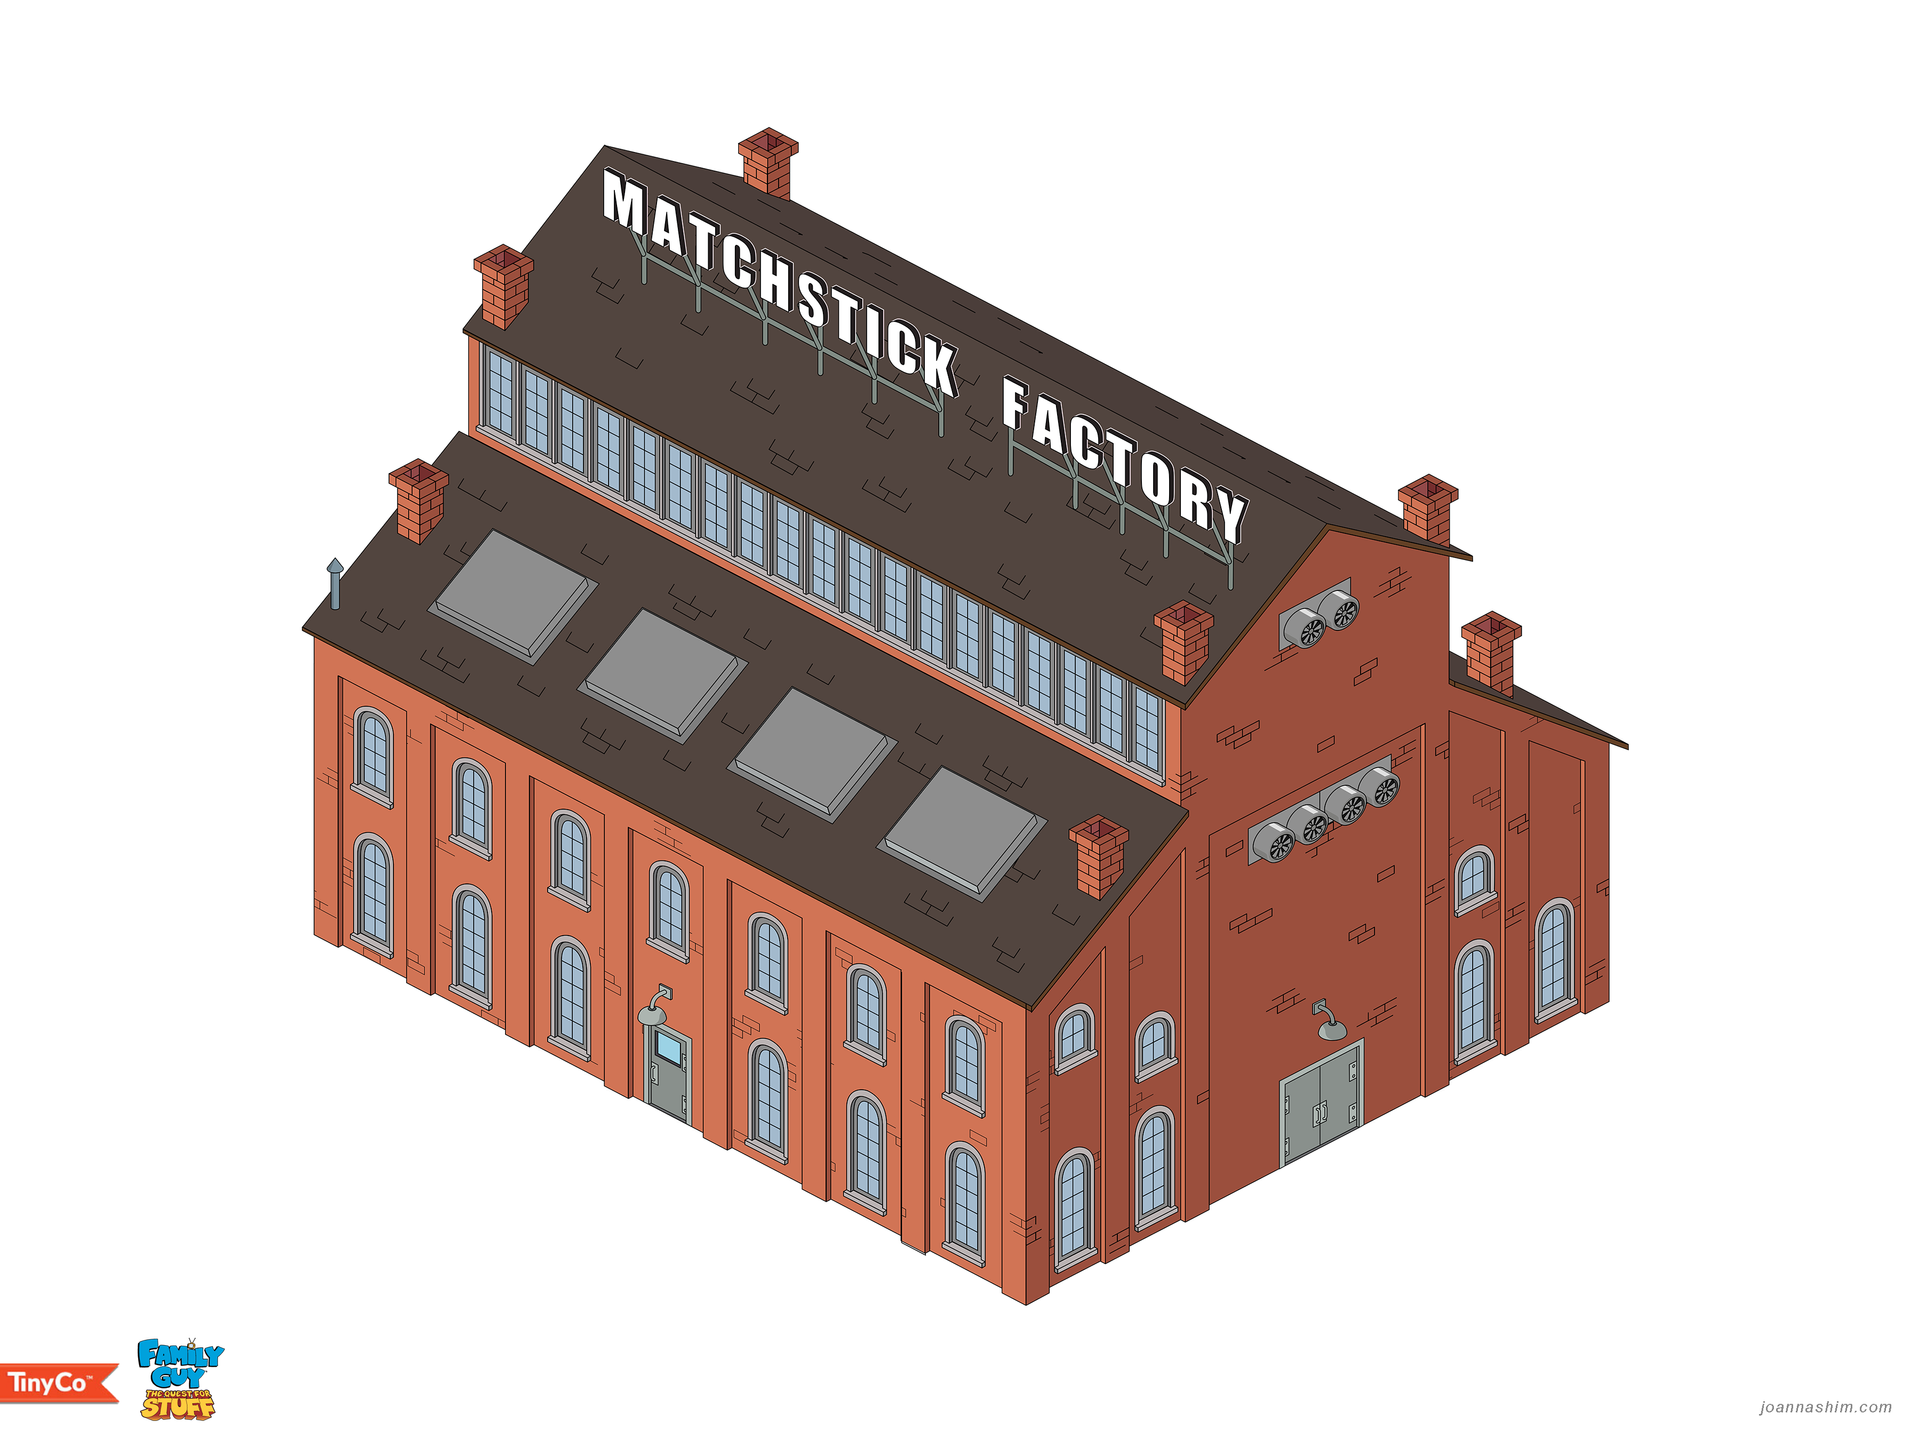 Firefighter Event - Matchstick Factory